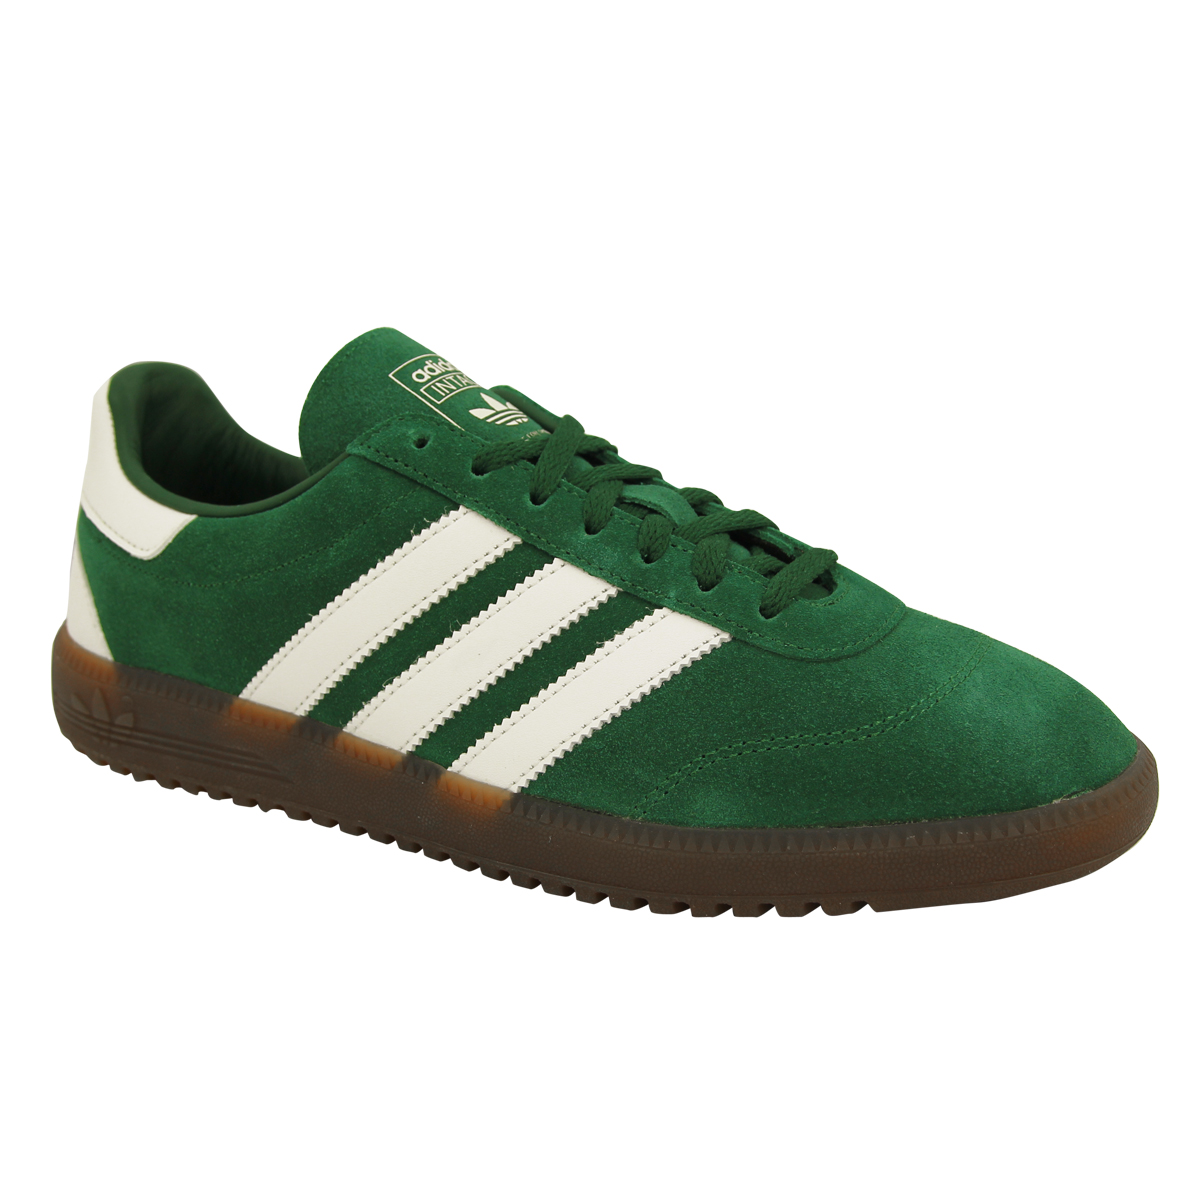 huge selection of 91d9e 1dd22 adidas-Originals-SPEZIAL-INTACK-Men-Sneakers-Shoes thumbnail 14